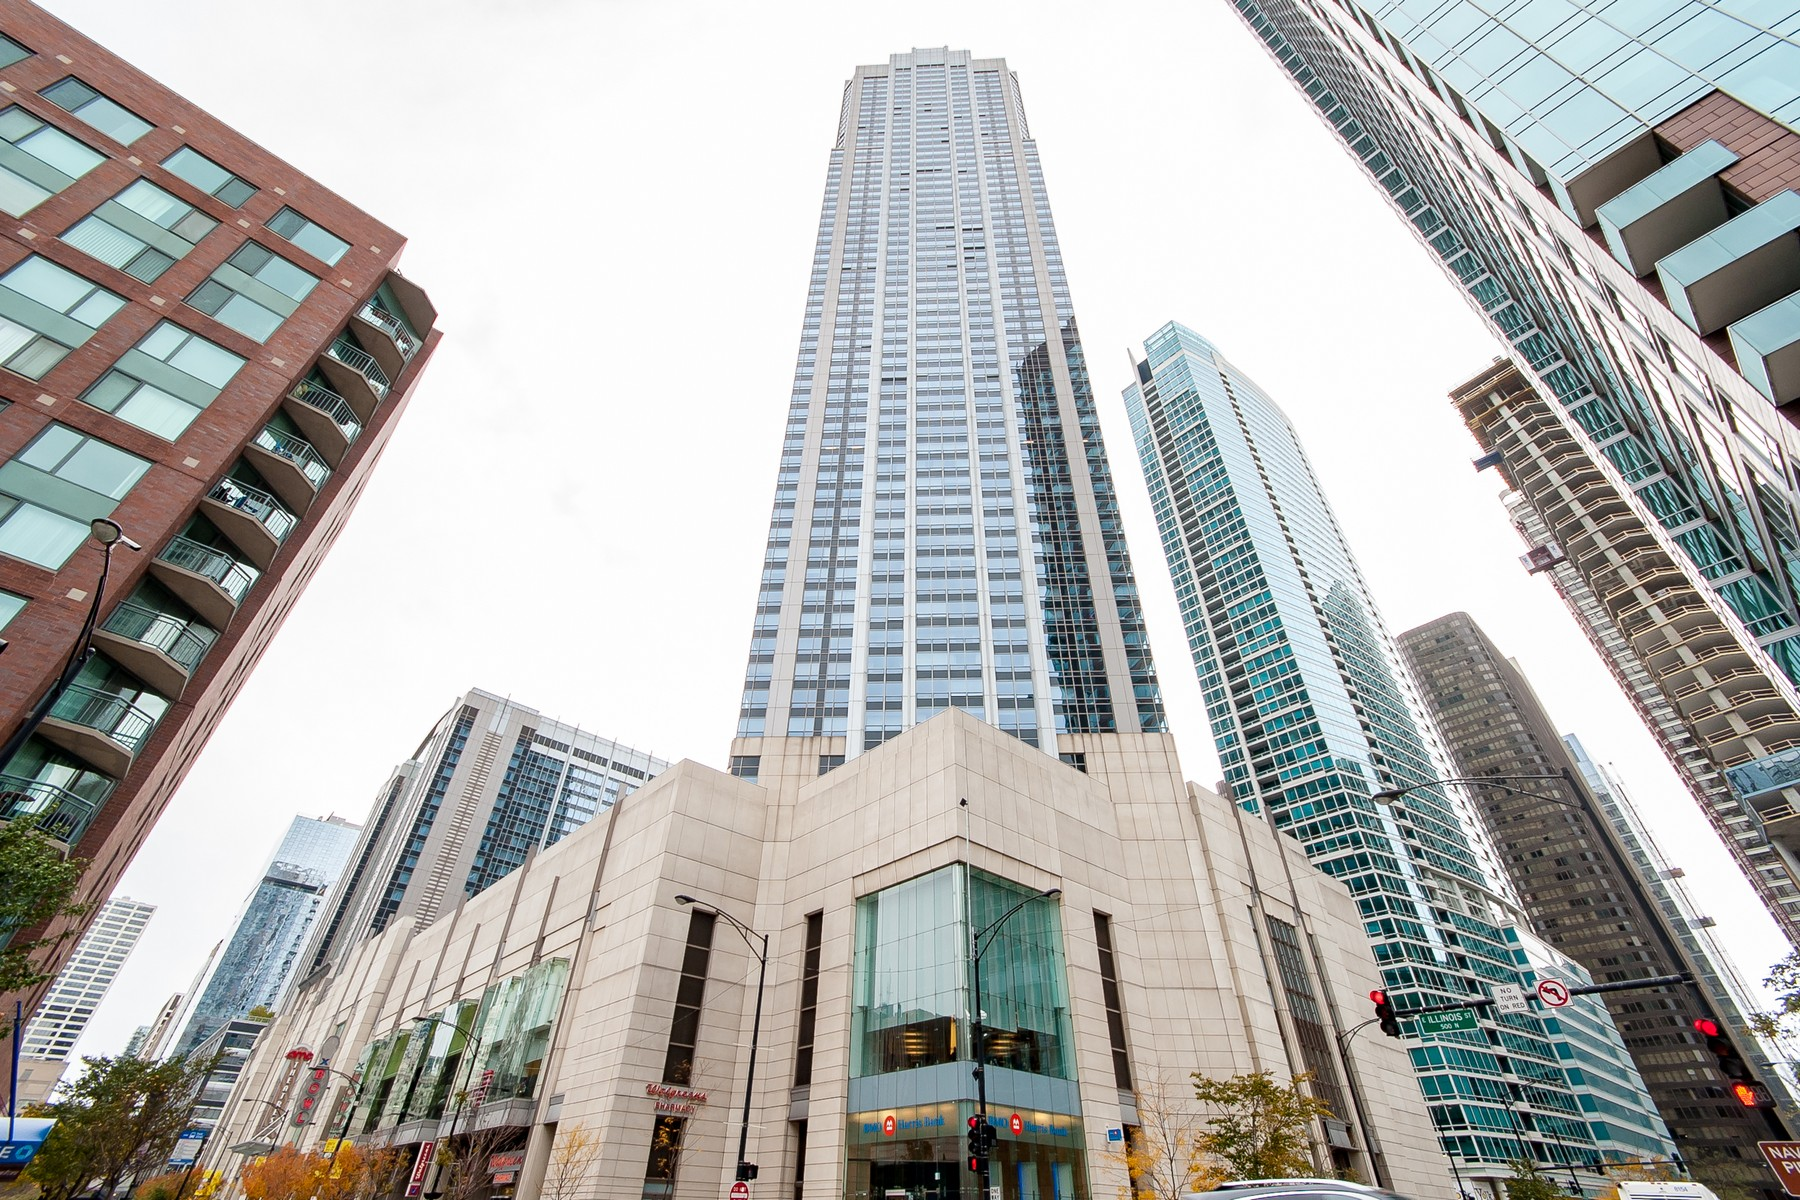 共管式独立产权公寓 为 销售 在 Magnificent Streeterville Condo 512 N Mcclurg Court Unit 607 Near North Side, Chicago, 伊利诺斯州 60611 美国